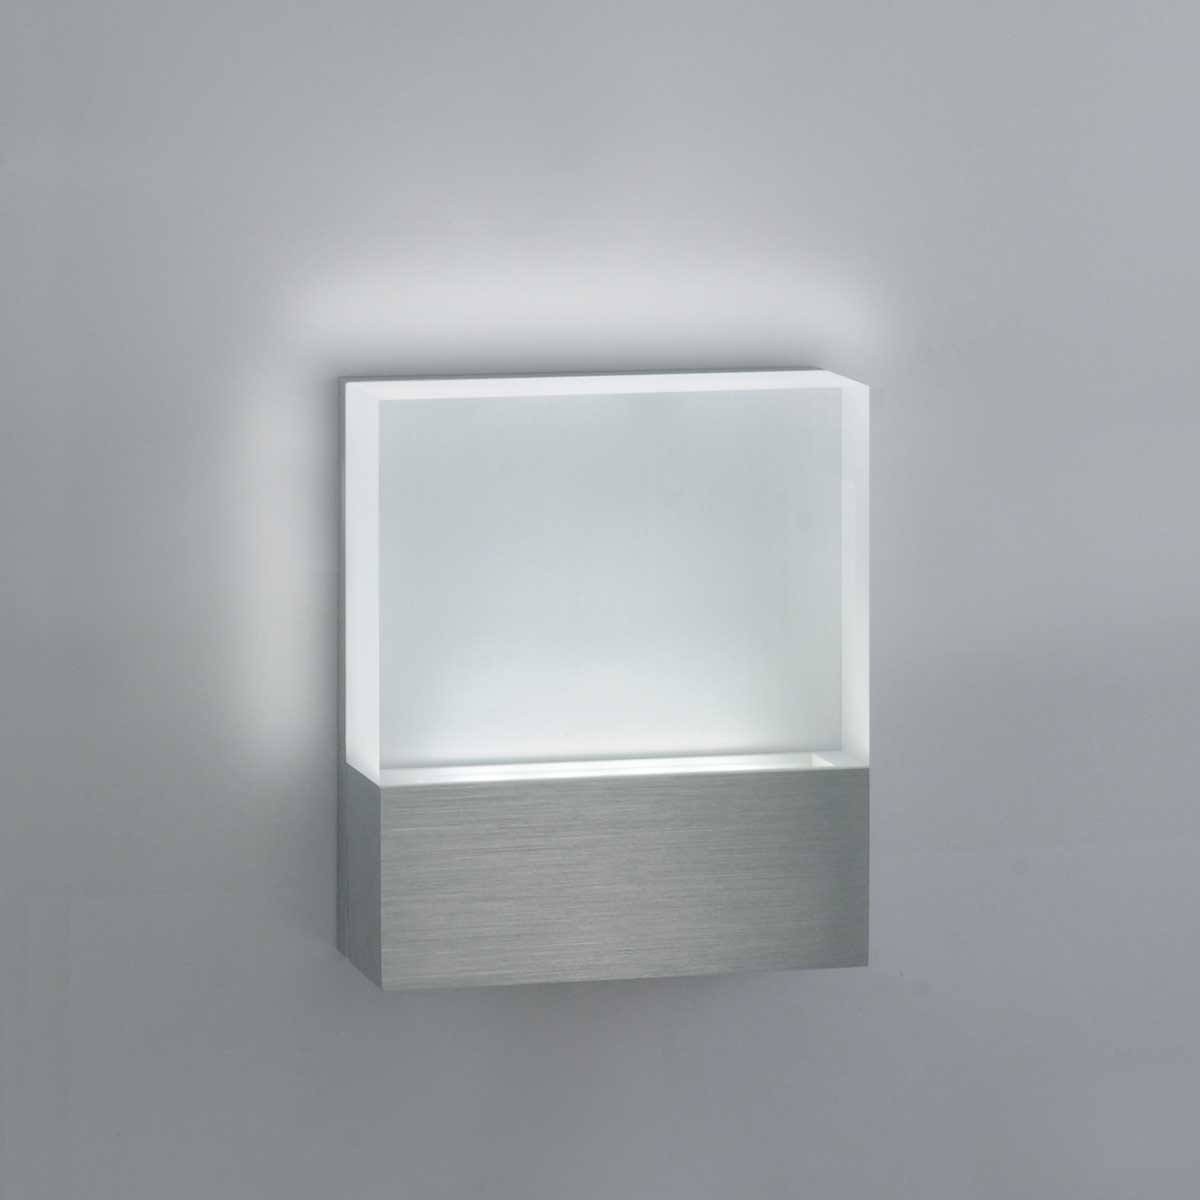 Image of: Led Flat Wall Sconce